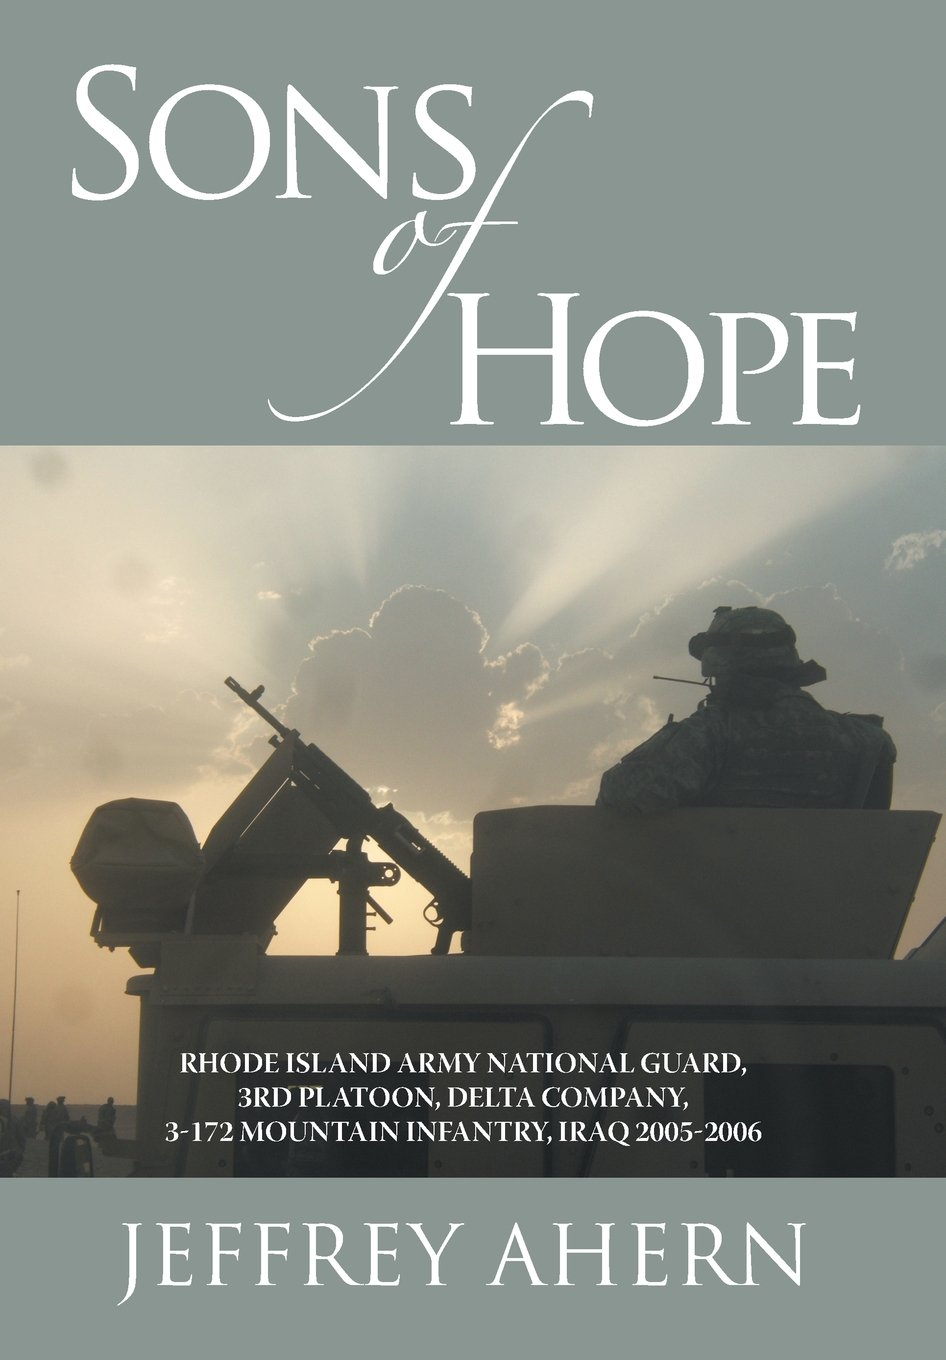 Download Sons of Hope: Rhode Island Army National Guard, 3rd Platoon, Delta Company, 3-172 Mountain Infantry, Iraq 2005-2006 PDF